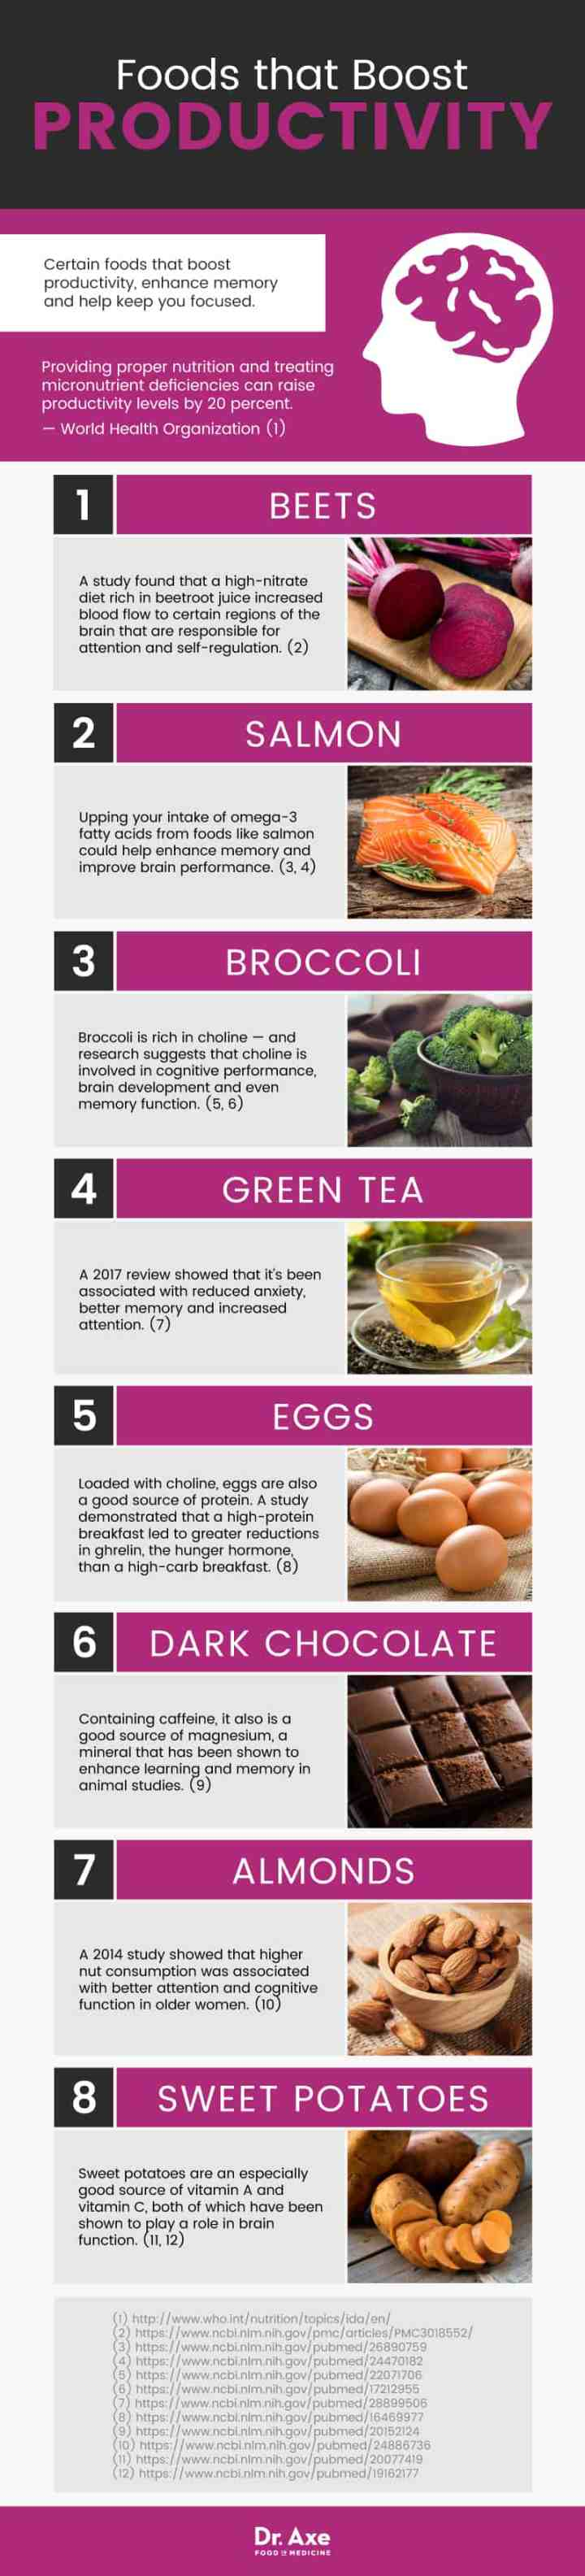 Foods that boost productivity